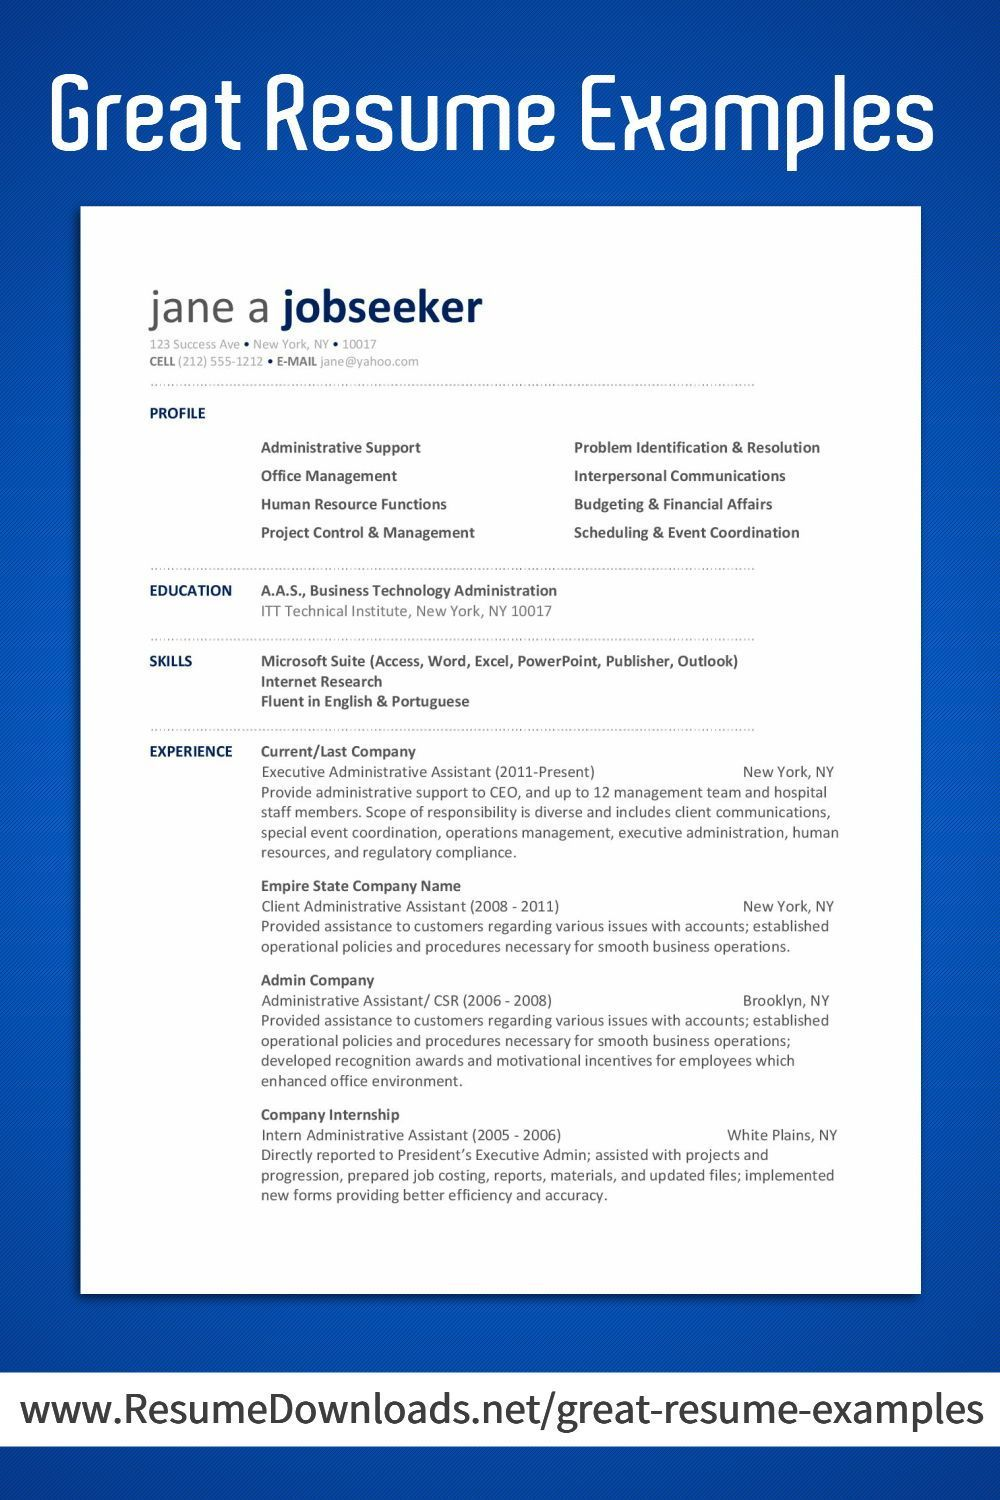 Pin by Modern Resume Design on Resume Examples Office in